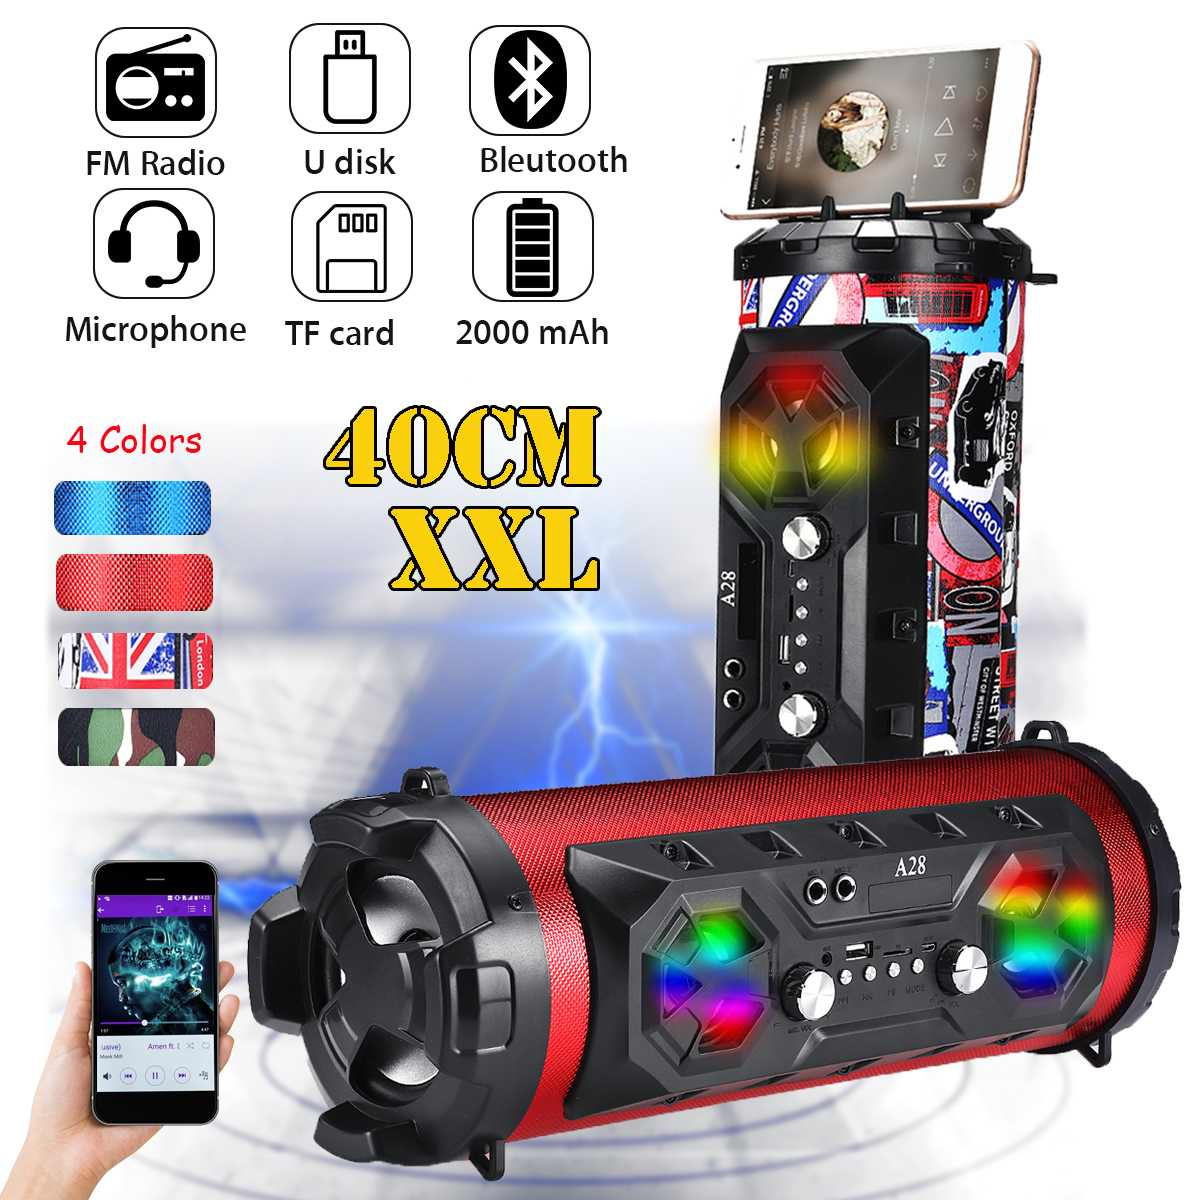 20W Outdoor bluetooth 4.2 Speaker Move KTV 3D Sound System Sound Bar Subwoofer 2000mAh Portable Column Speaker FM USB AUX TF20W Outdoor bluetooth 4.2 Speaker Move KTV 3D Sound System Sound Bar Subwoofer 2000mAh Portable Column Speaker FM USB AUX TF